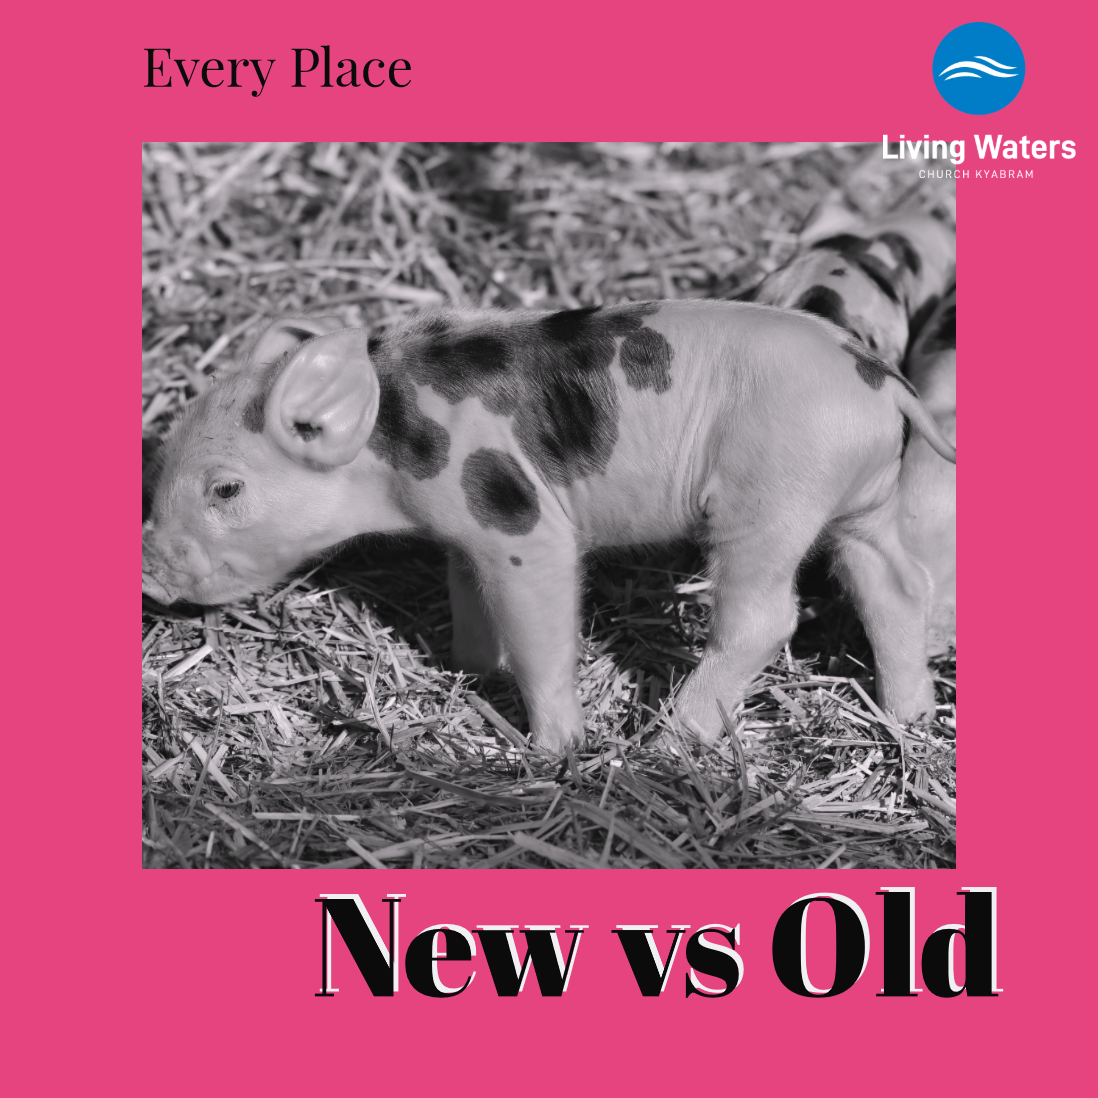 Every Place – New vs Old